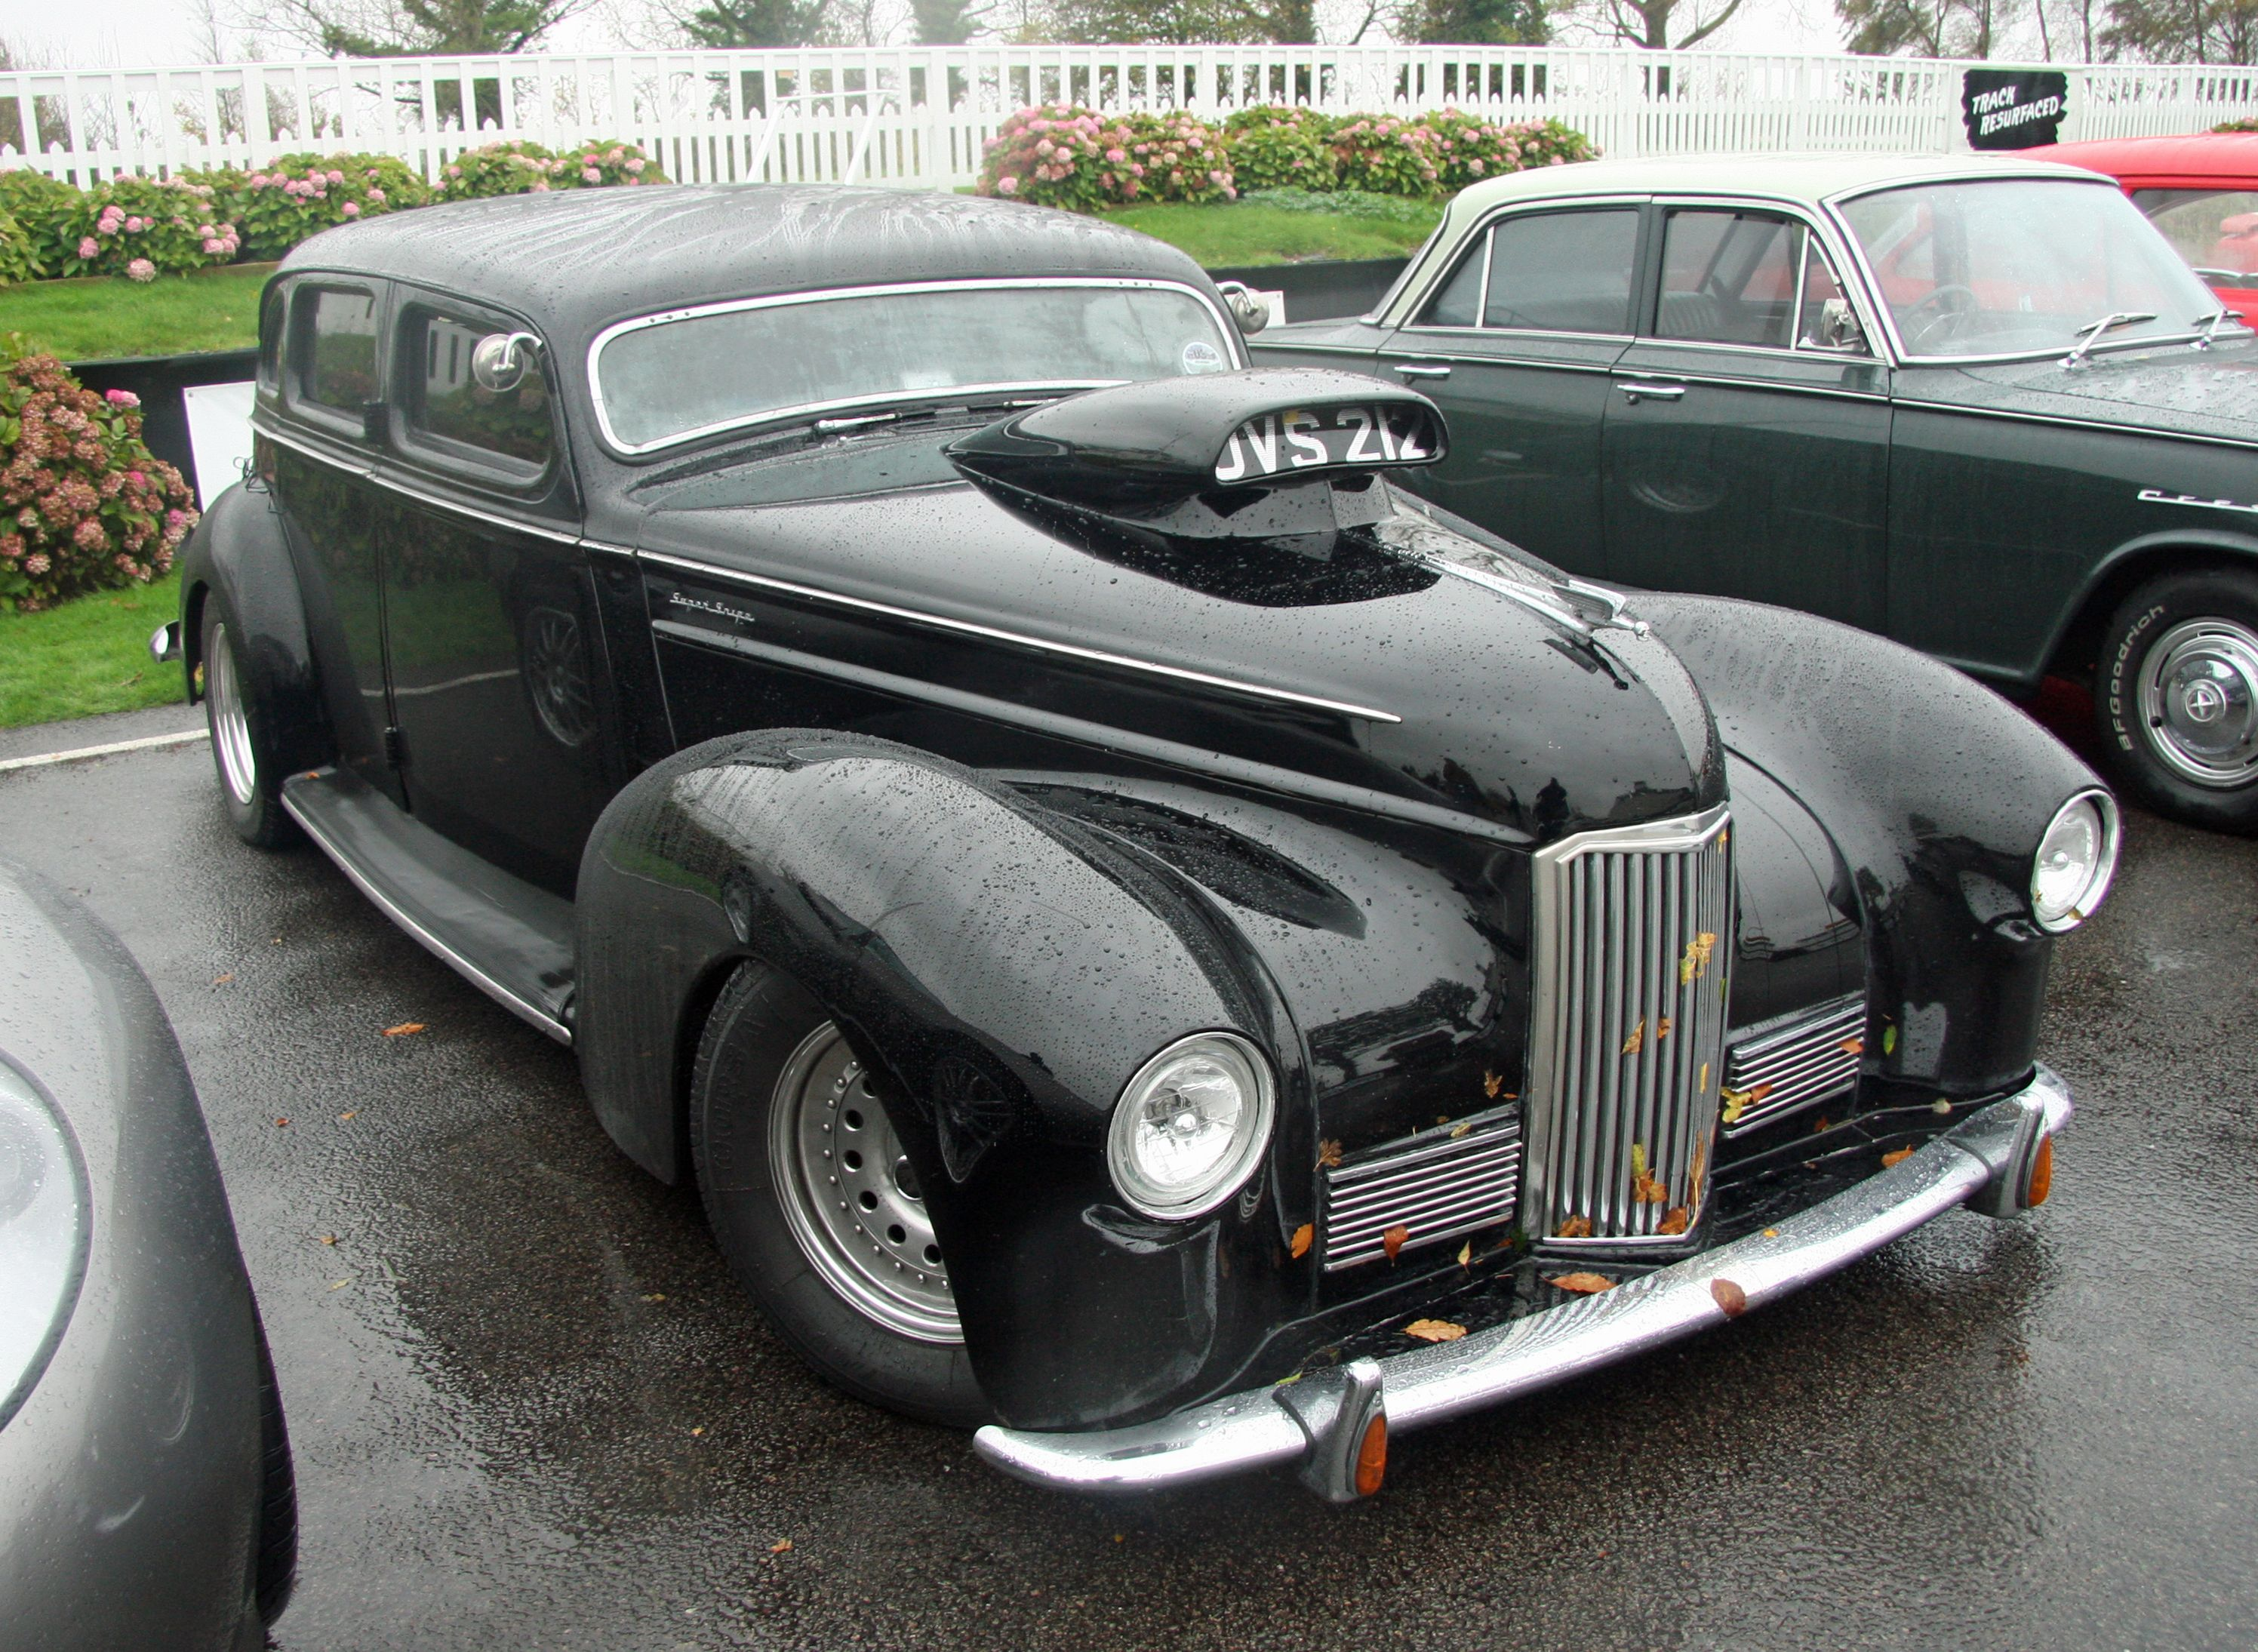 The humber super snipe is a car which was produced from 1938 to 1967 by the